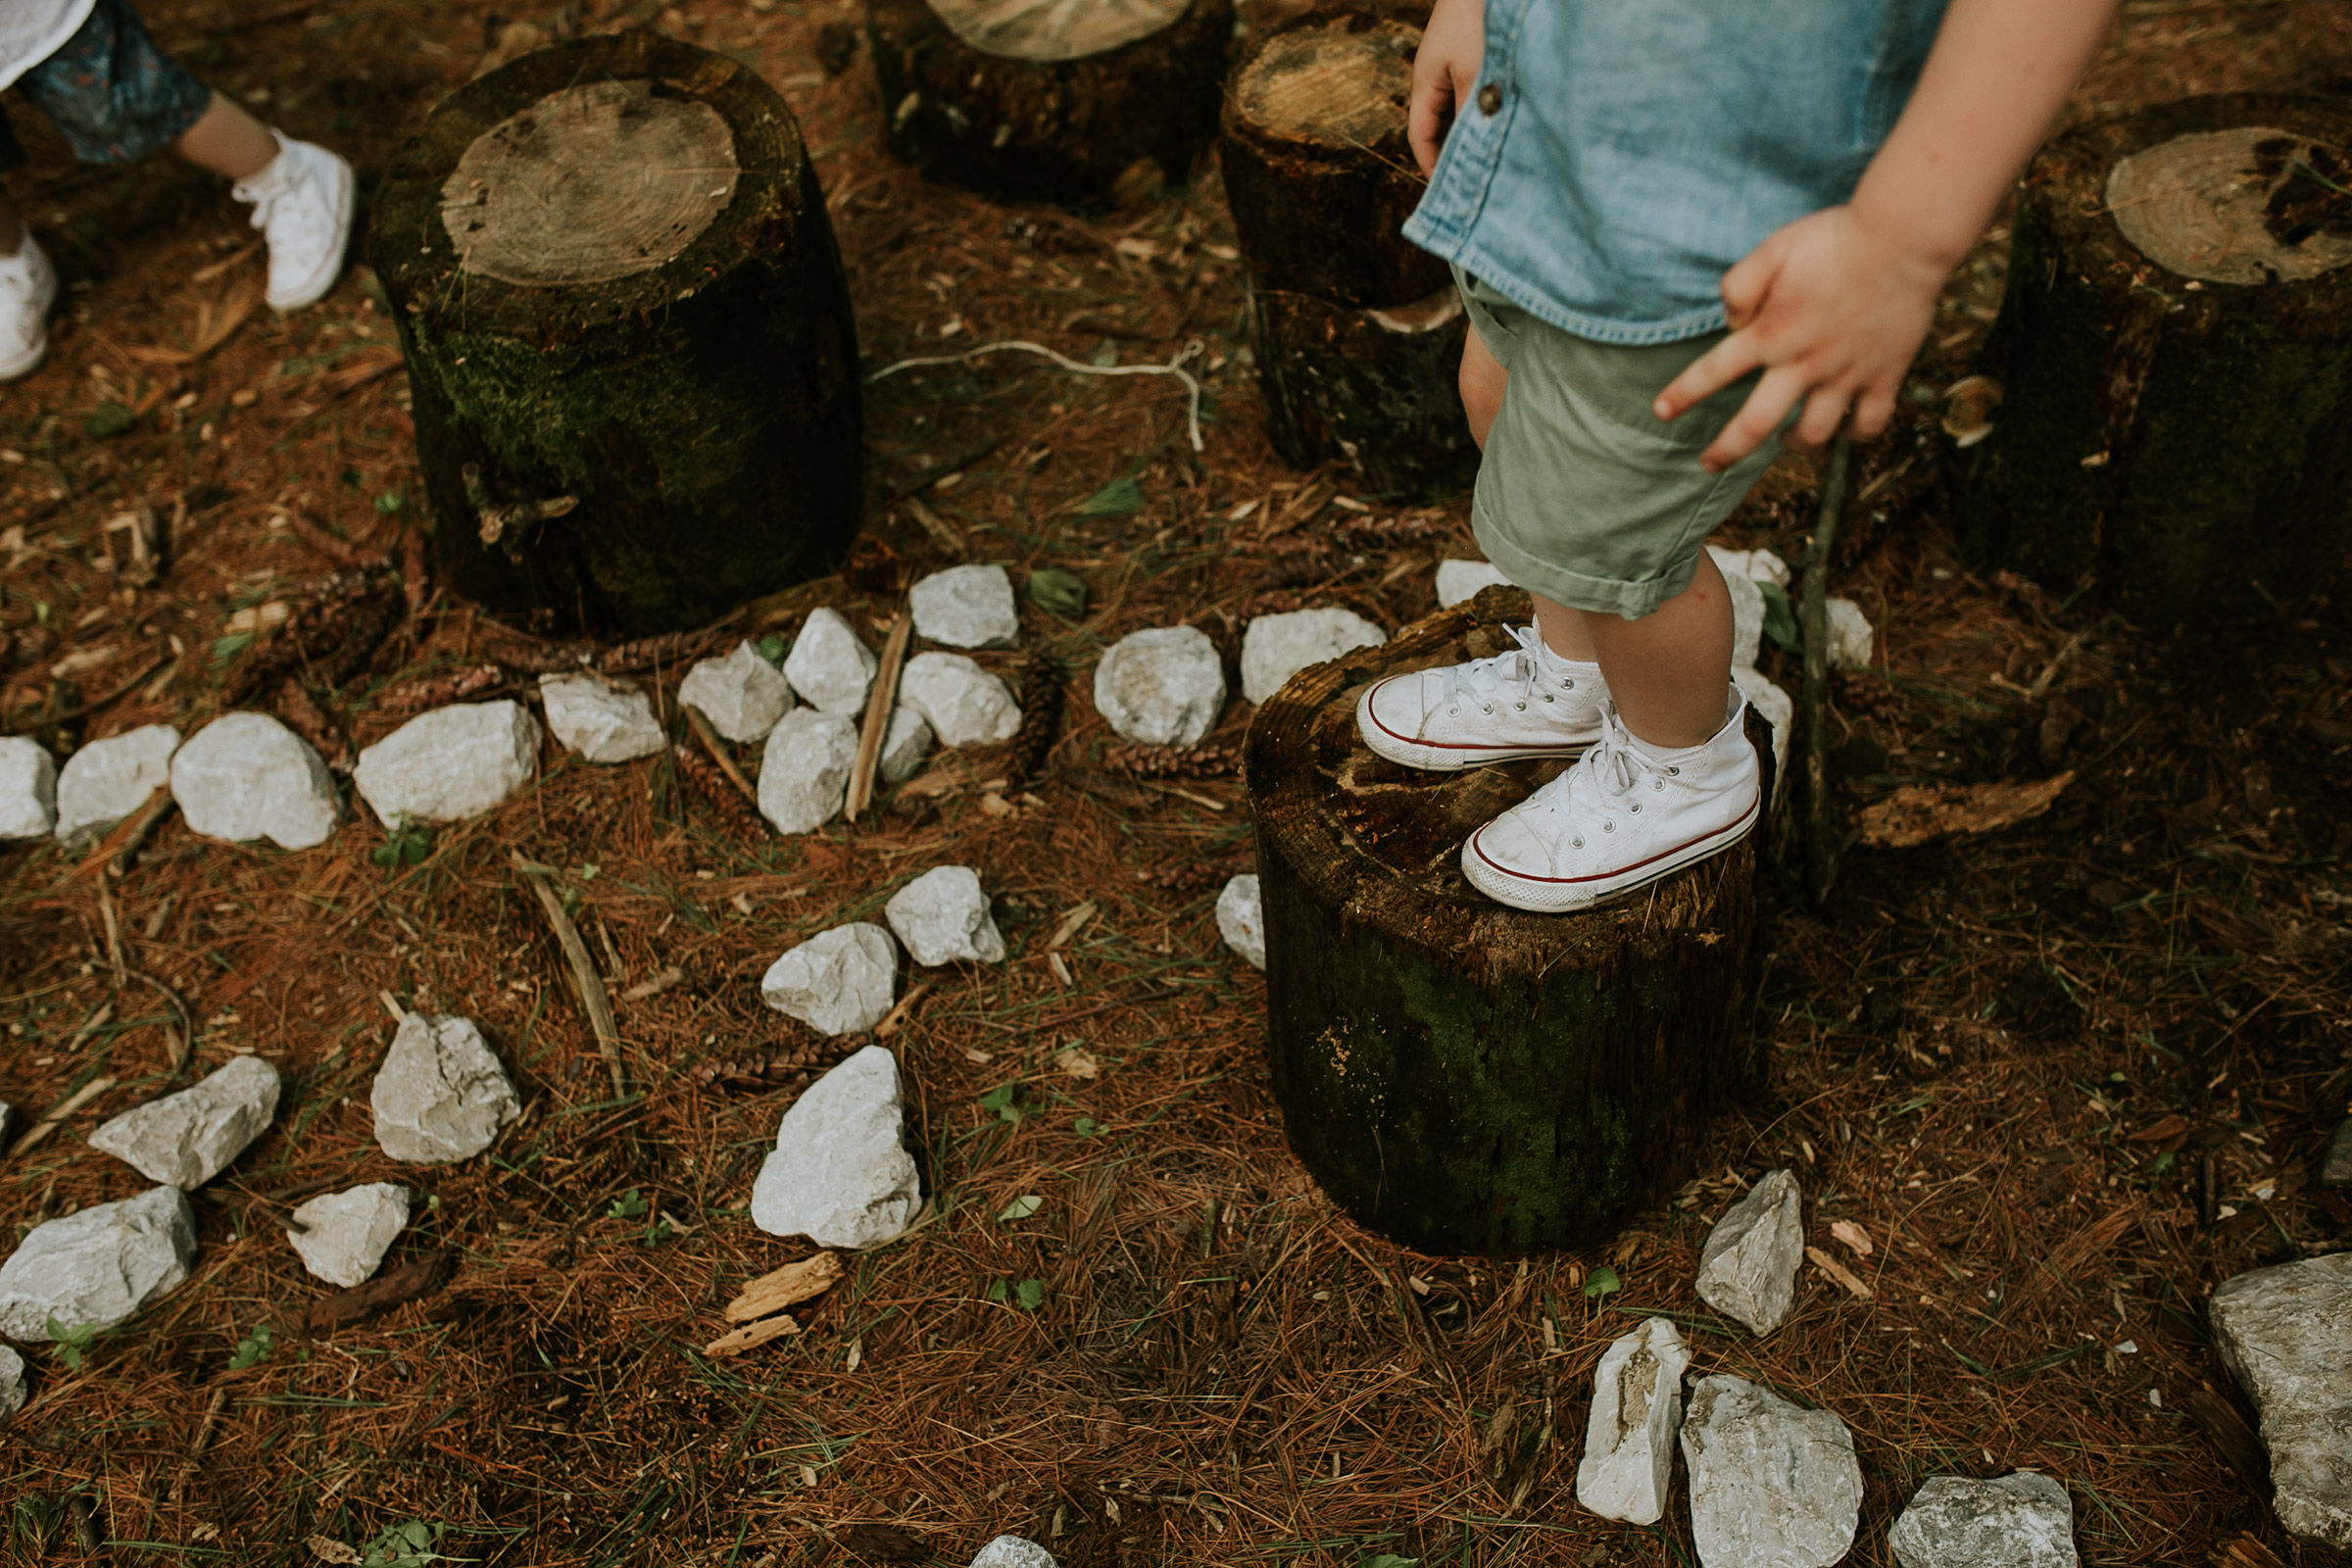 flynn-family-kid-converse-shoes-on-rocks-and-tree-trunks-jester-park-iowa-raelyn-ramey-photography.jpg